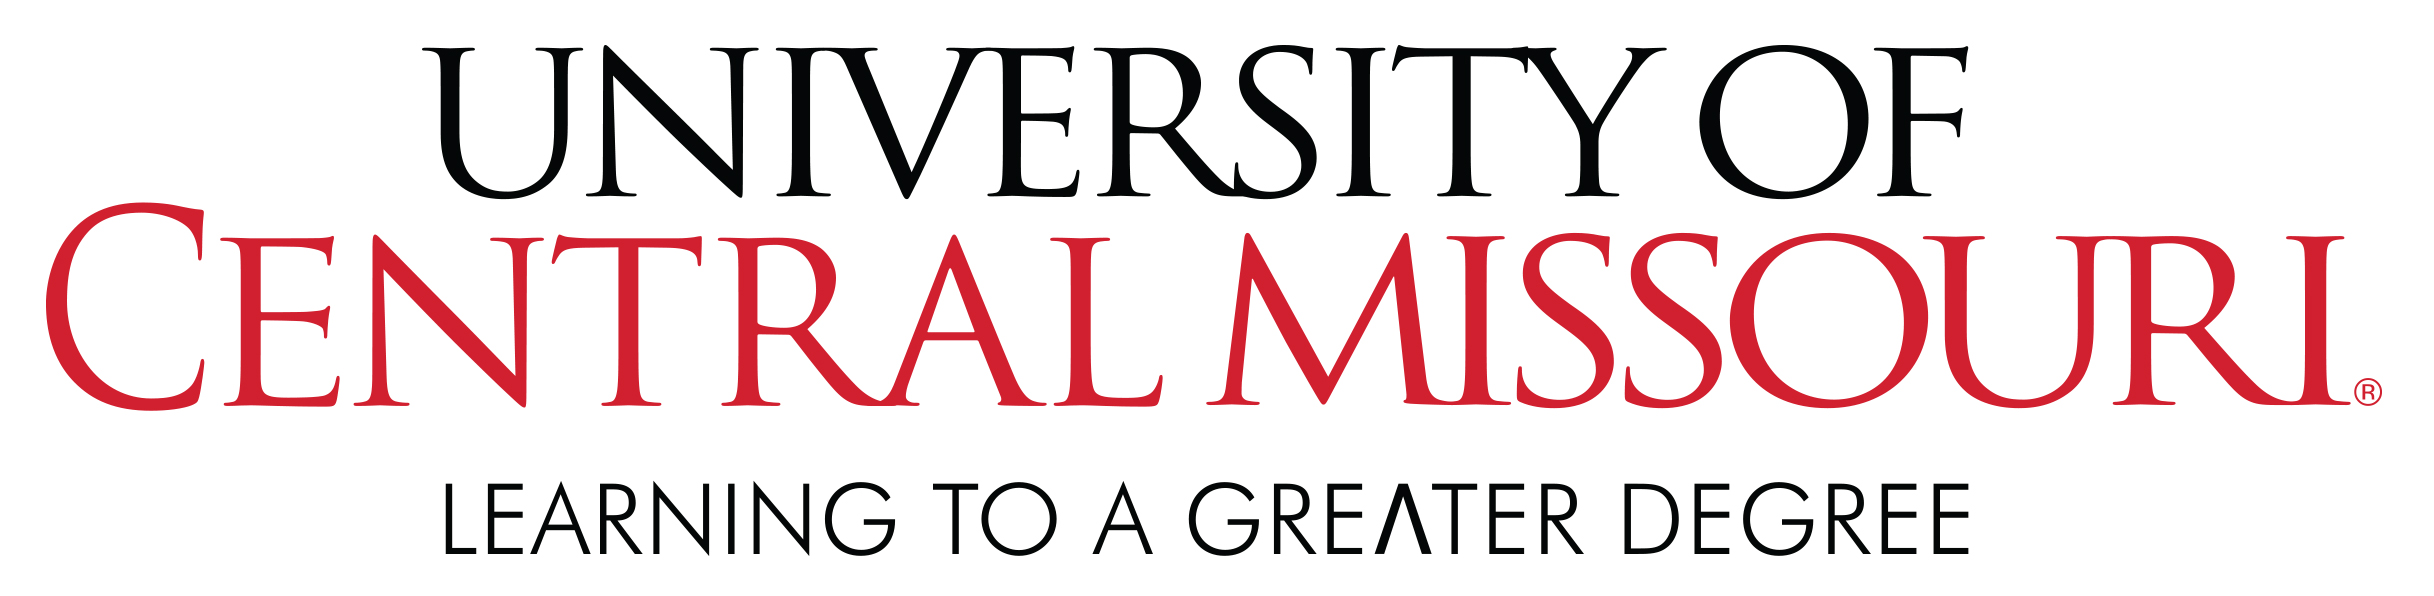 University Of Central Missouri Find Your Fit At Ucm